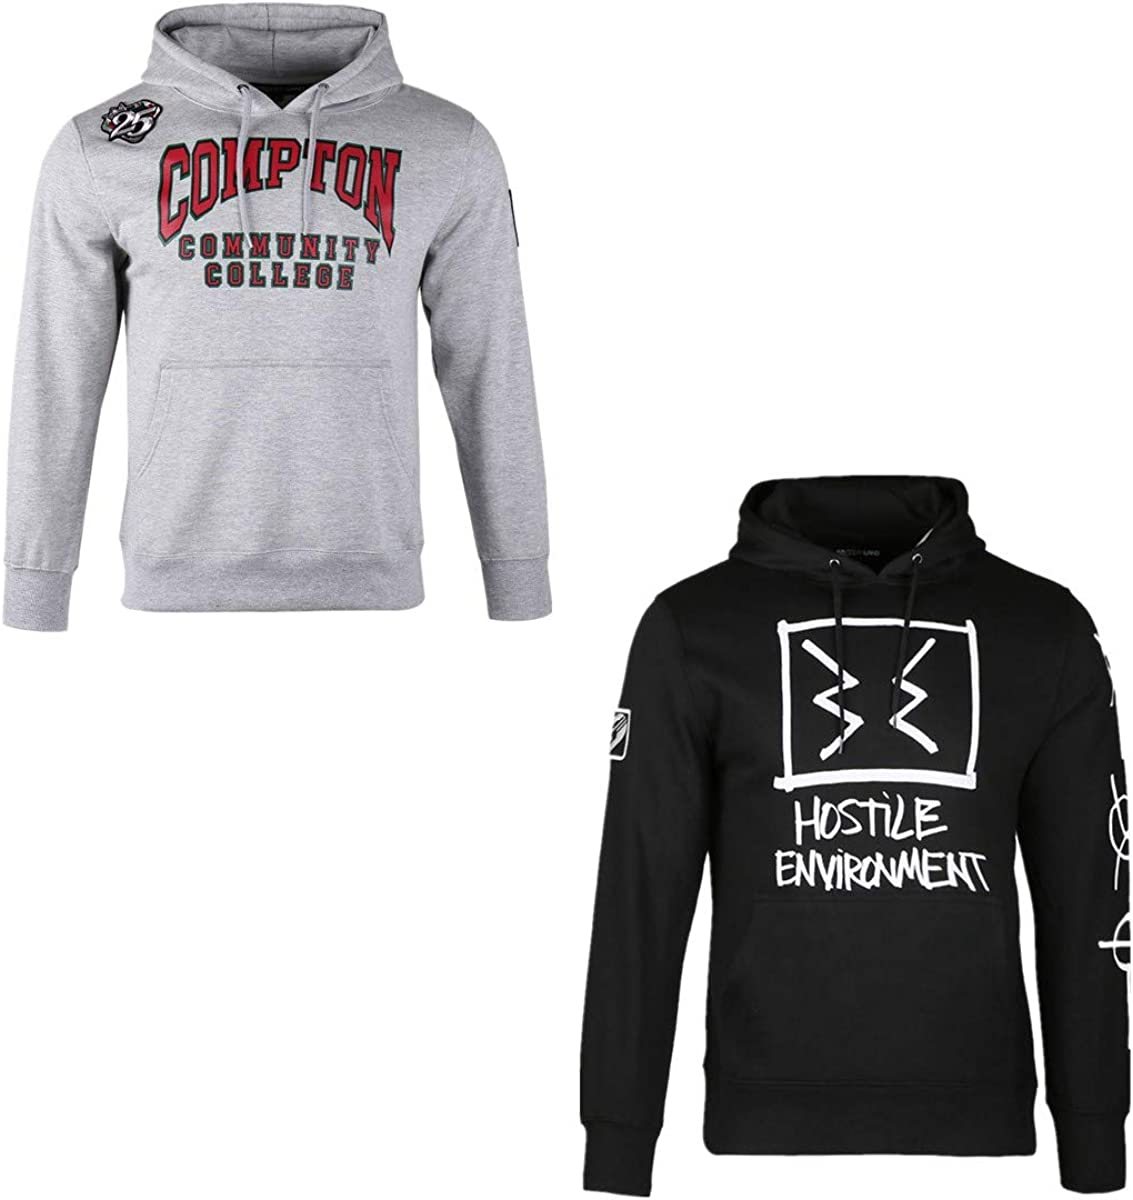 2 Pack Men's Sweater Cotton Lined Pullover Heavyweight College Streetwear with Drawstring